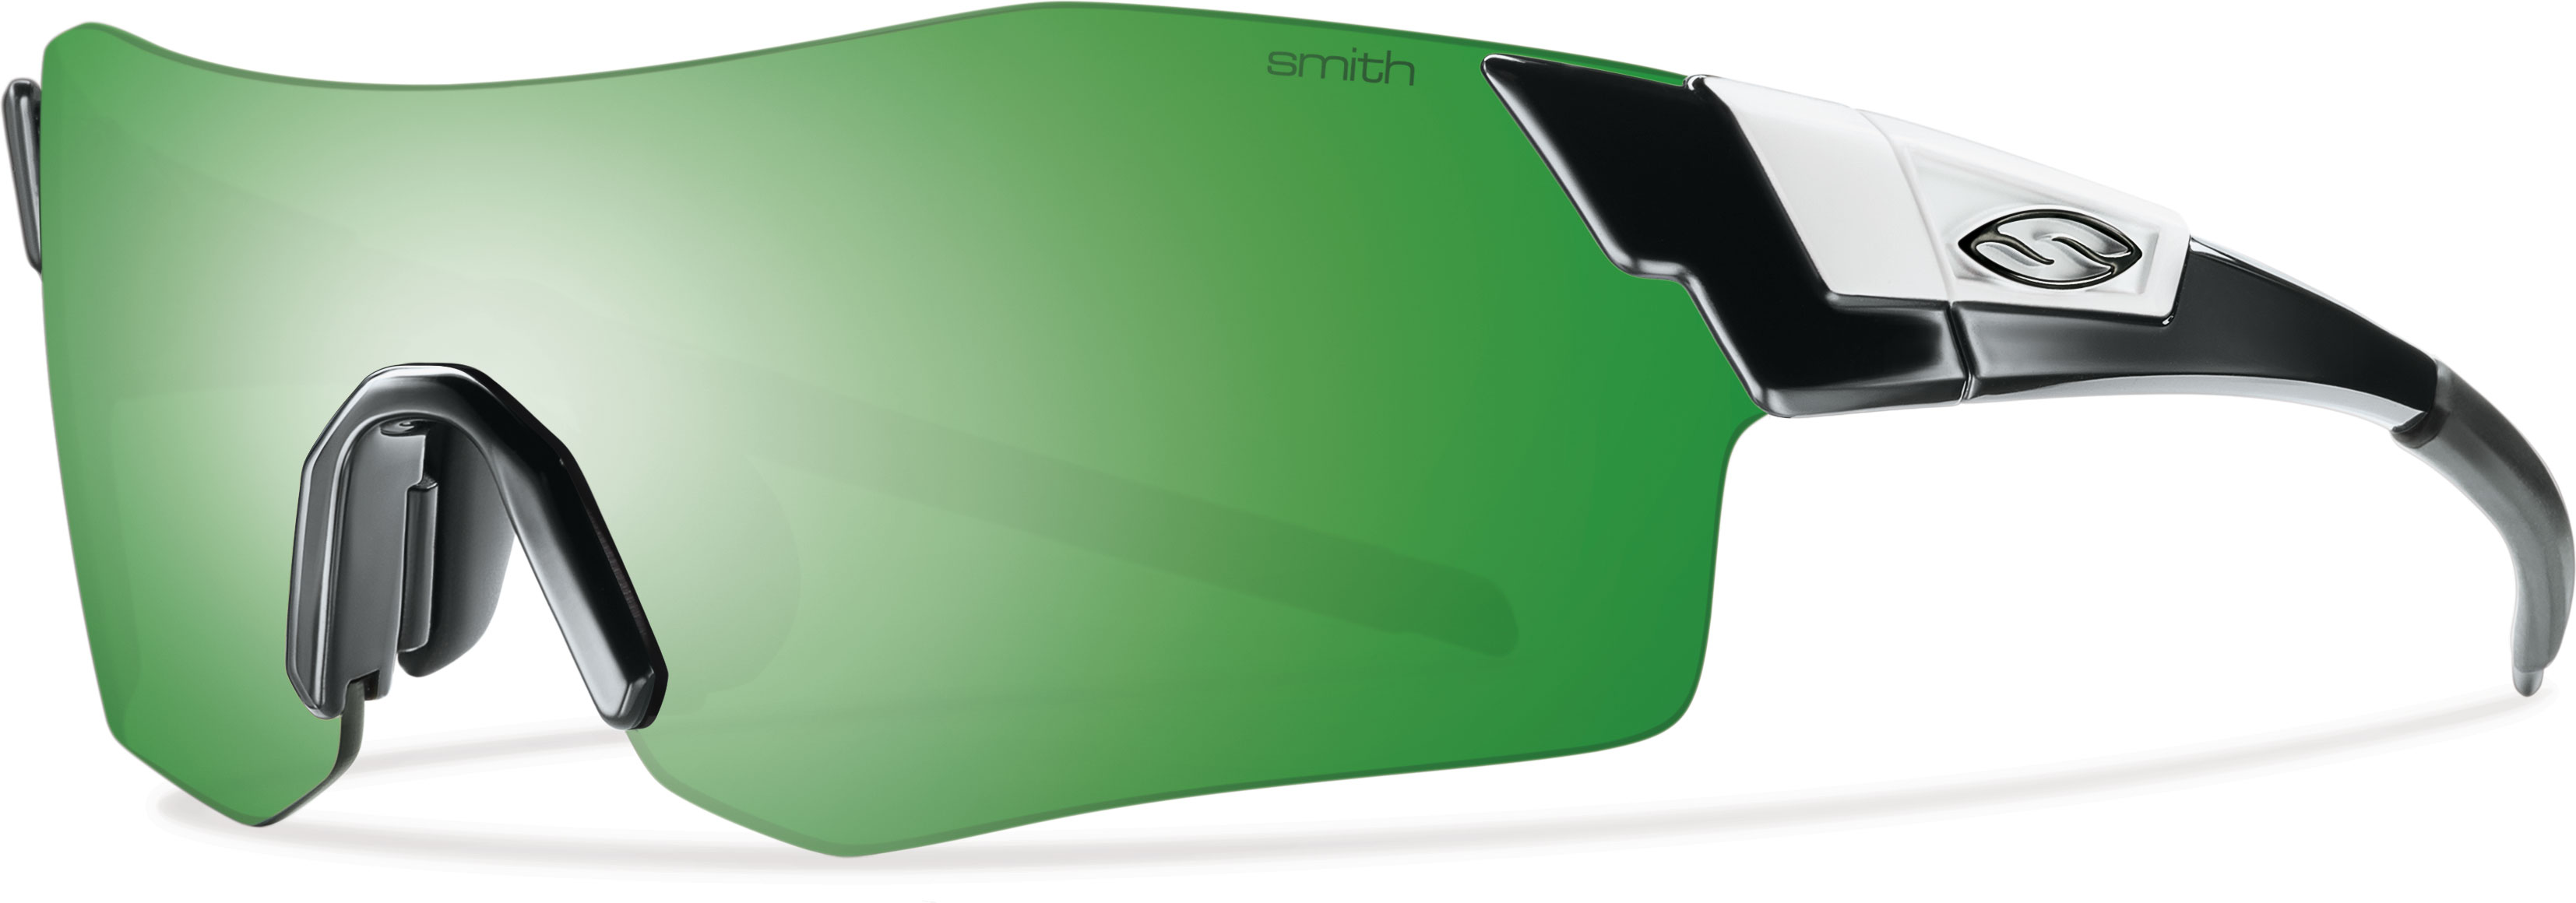 Smith Pivlock Arena, Smith Cycling sunglasses